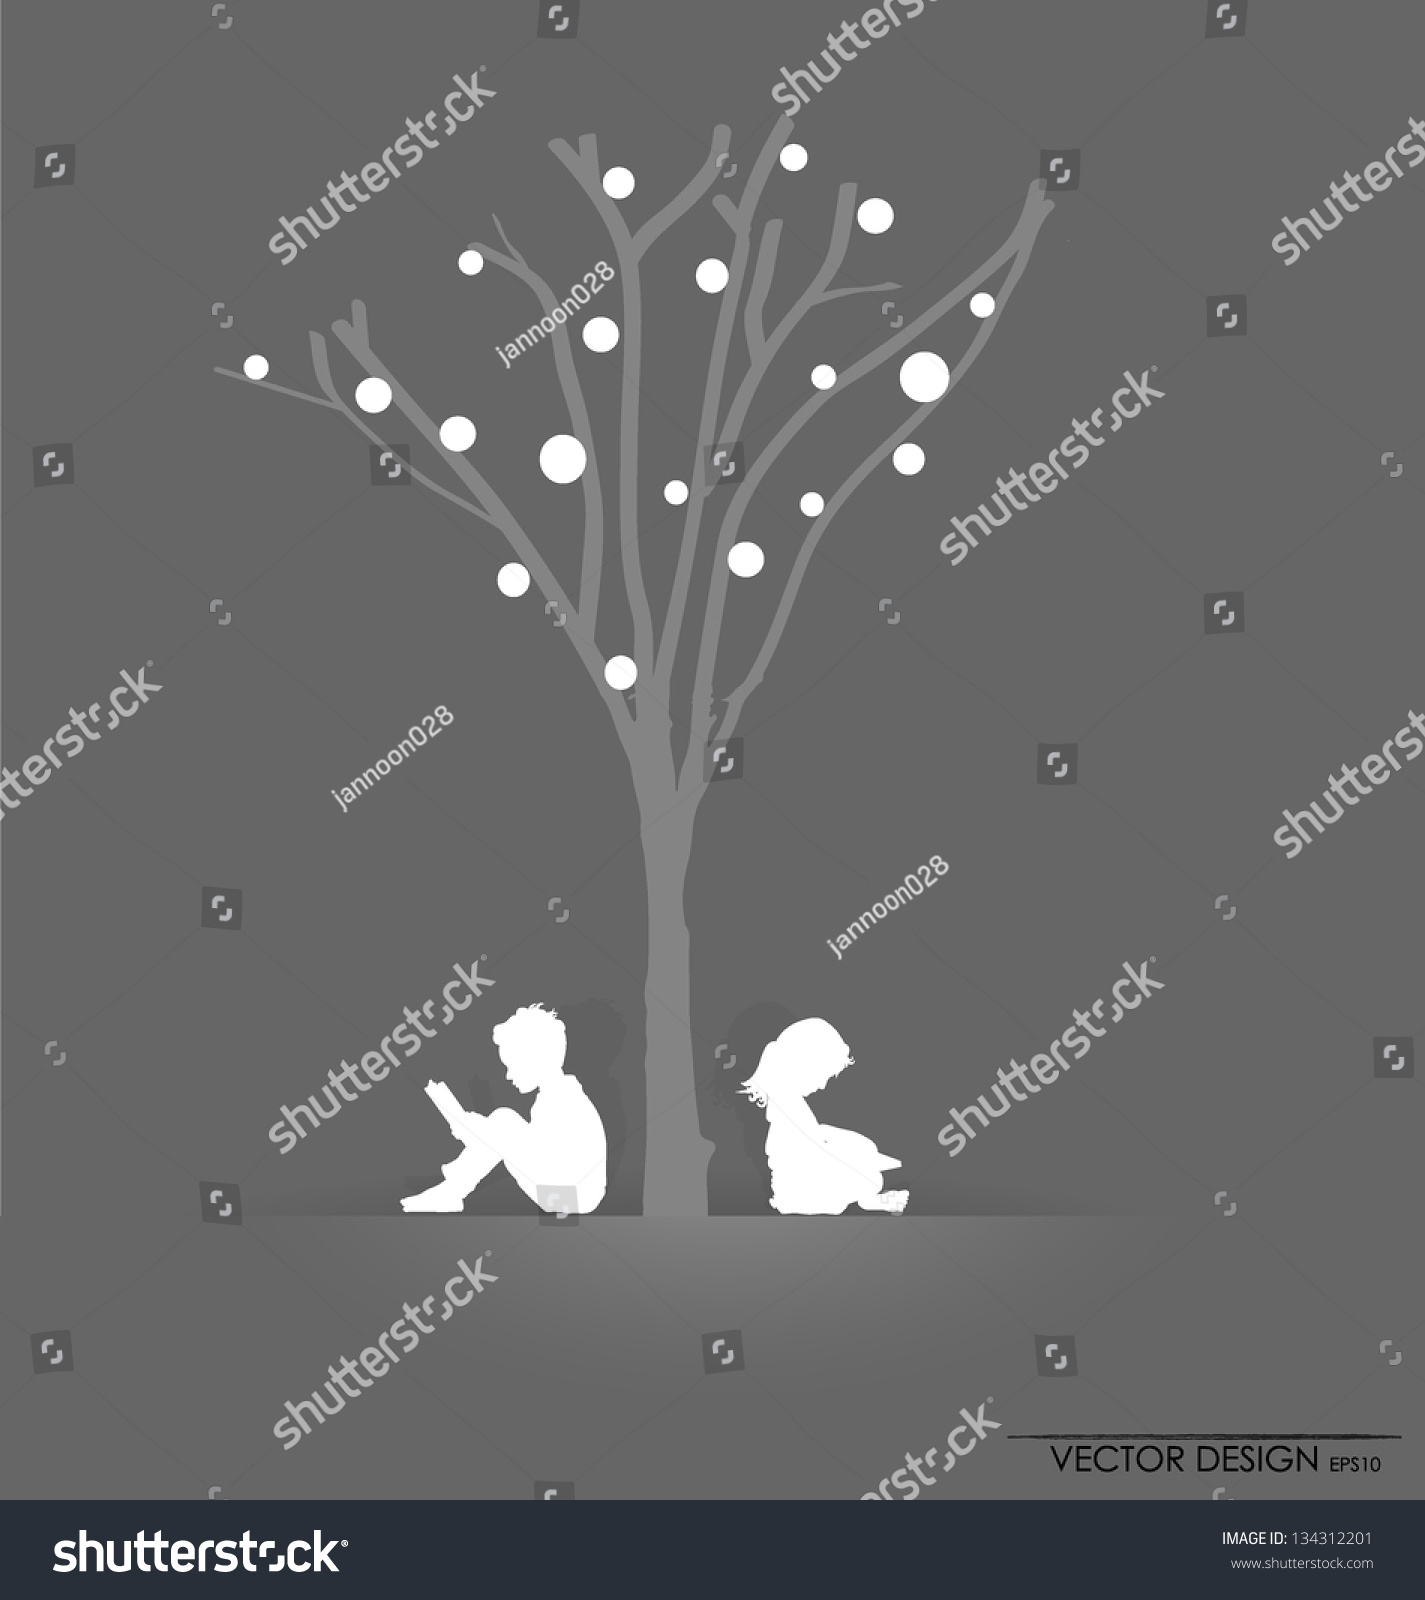 Stock Vector Vector Background With Children Read A Book Under Tree Ve...